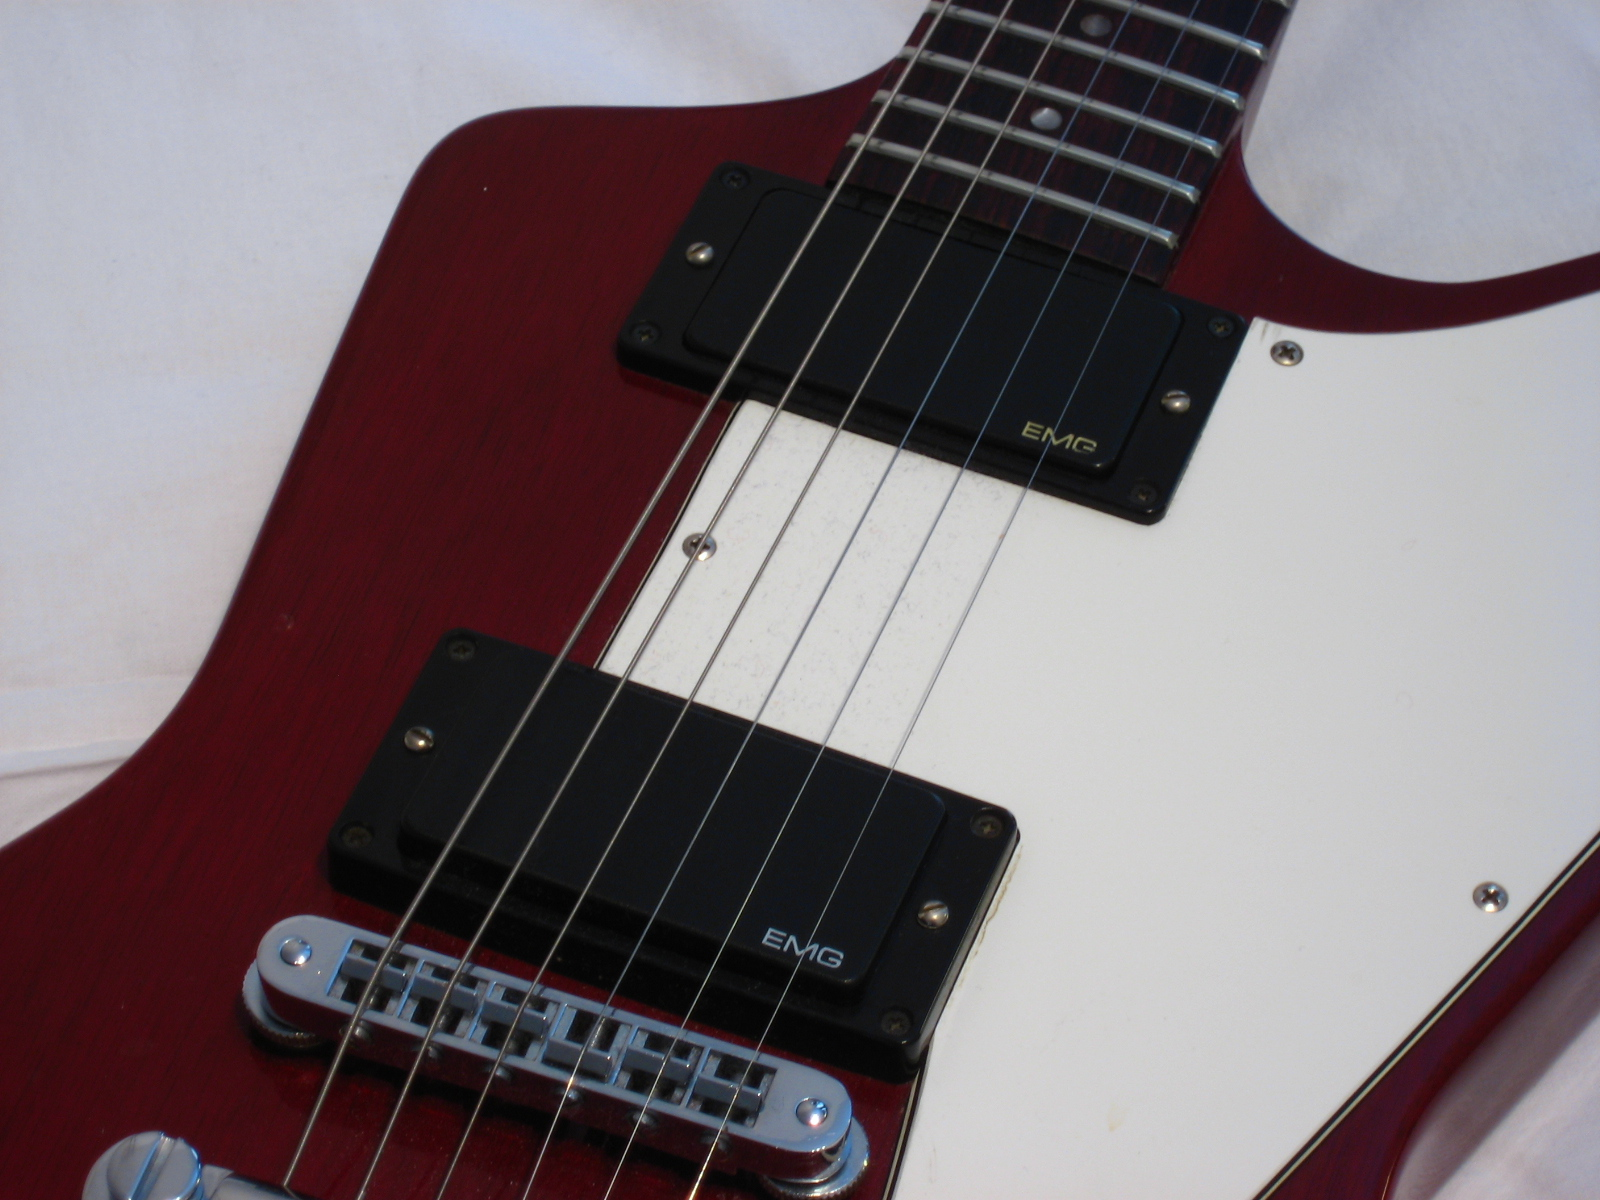 gibson pickup dating Guitar discussion forum archive - march, 2002 guitarsite legacy forum monthly discussion submitted by hq_admin_gsite on fri dating gibson humbucker pickups.